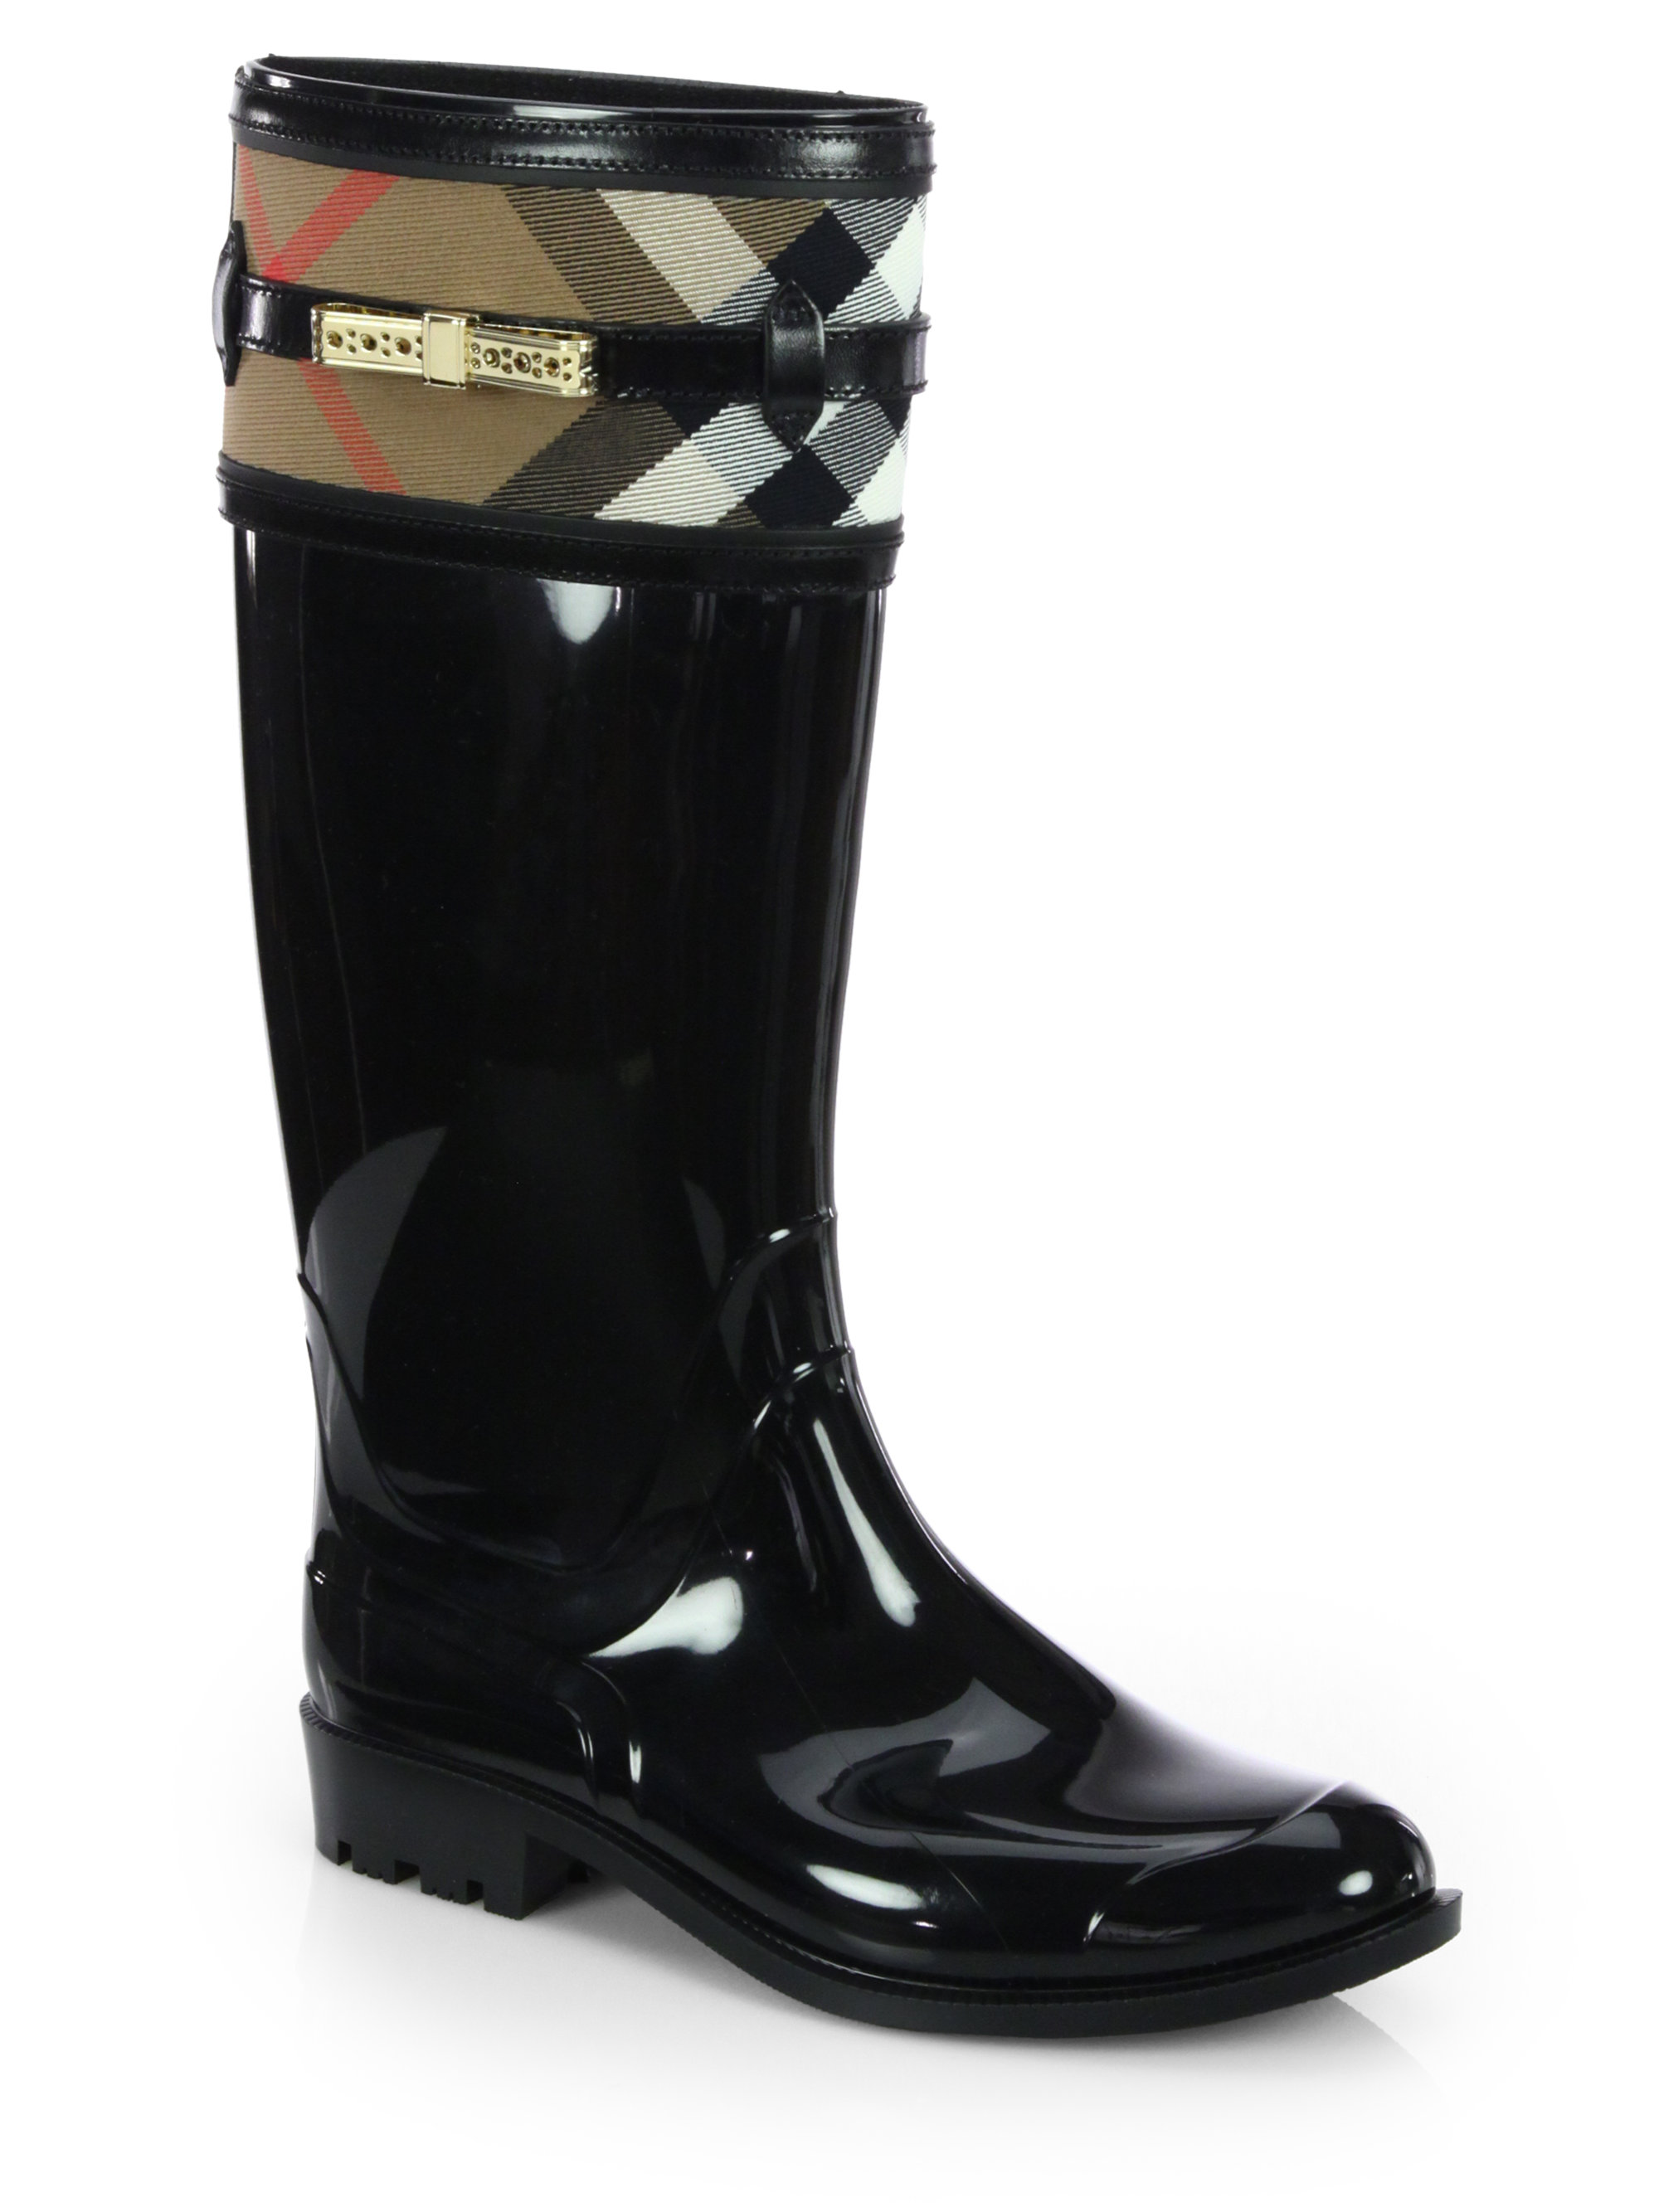 Burberry Aberfield Check Rain Boots in Black